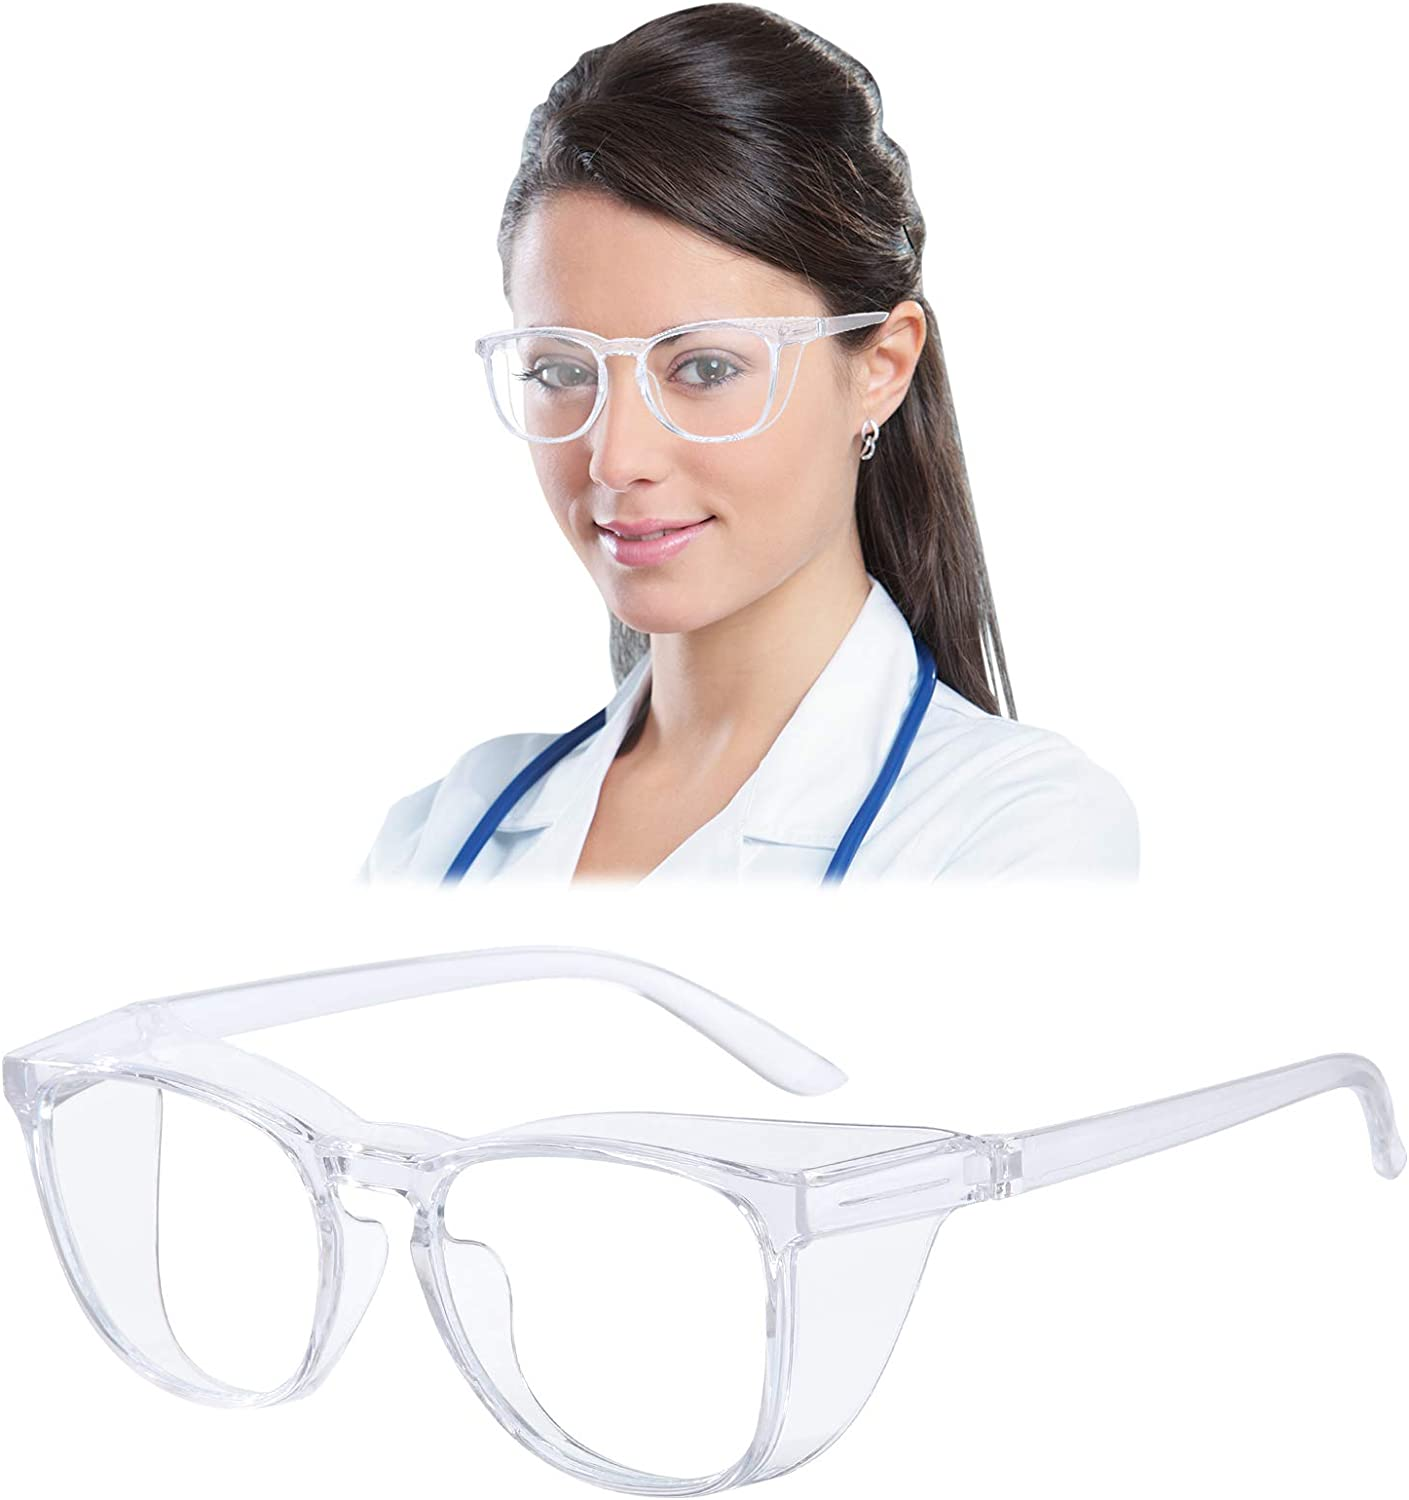 Anti Fog Safety Glasses Goggles Blue Men Wholesale Light Wome Shipping included for Blocking